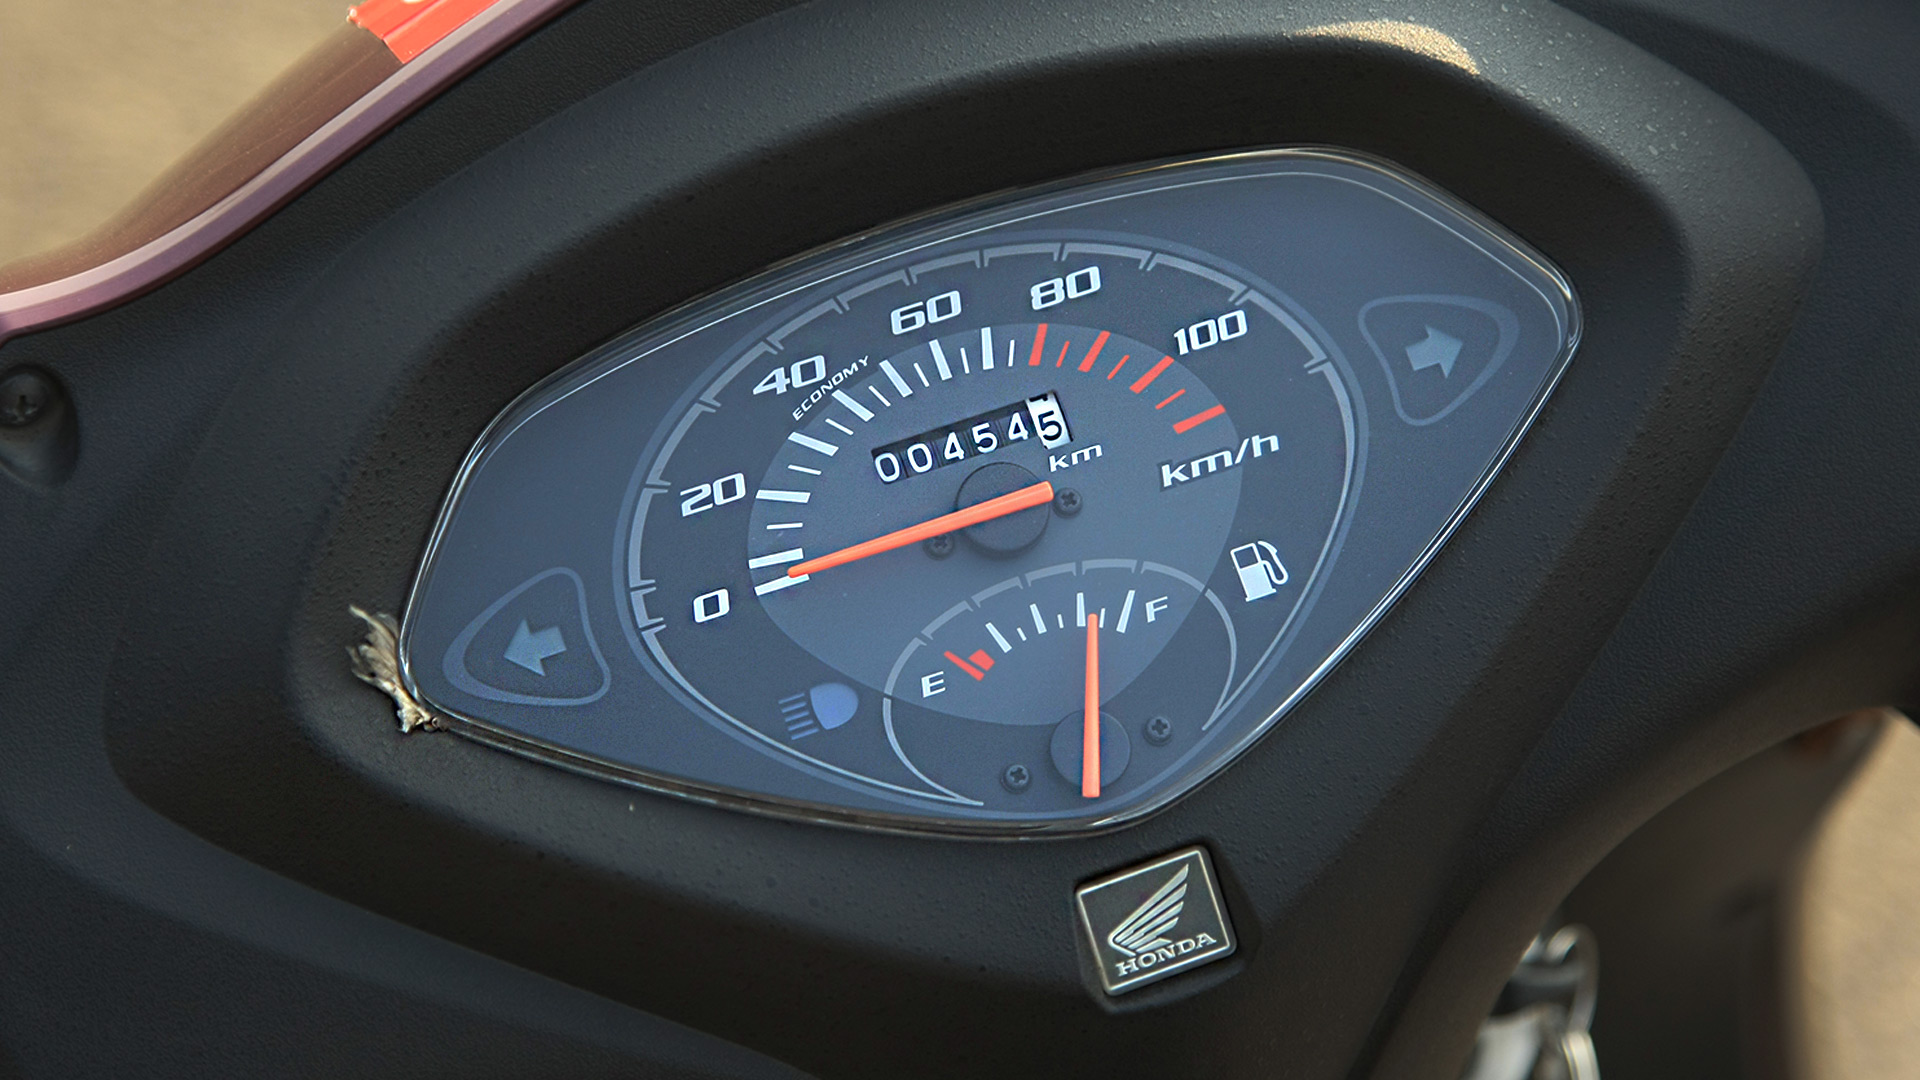 Honda Grom Gas Mileage >> Honda Activa 125 2014 STD - Price, Mileage, Reviews, Specification, Gallery - Overdrive